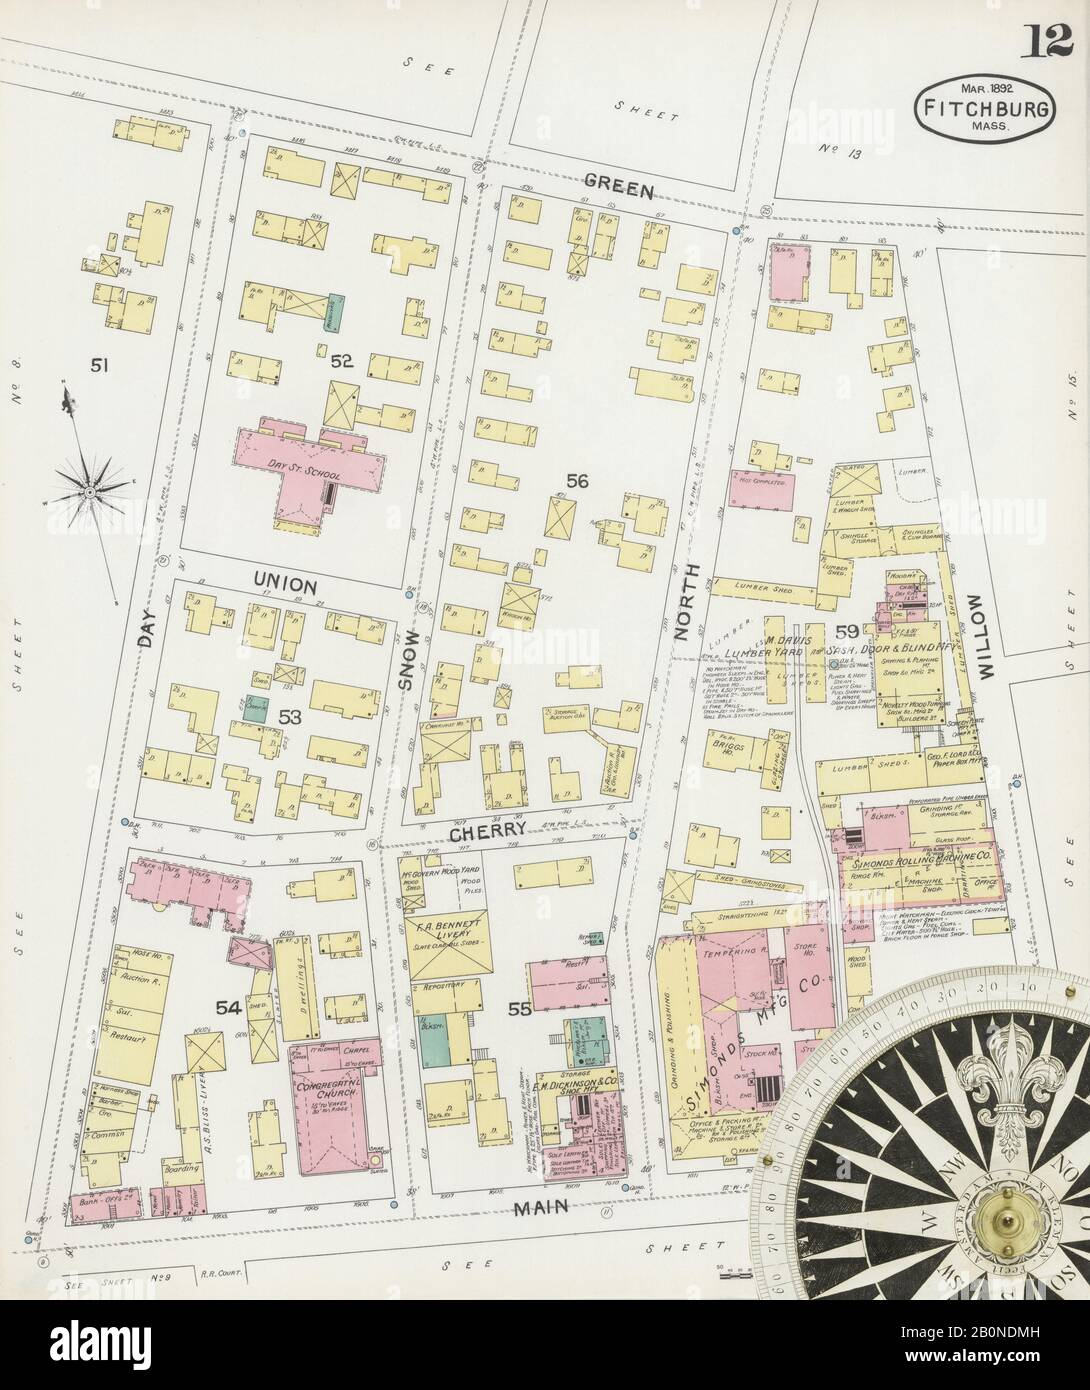 Image 12 of Sanborn Fire Insurance Map from Fitchburg, Worcester County, Massachusetts. Mar 1892. 23 Sheet(s), America, street map with a Nineteenth Century compass Stock Photo